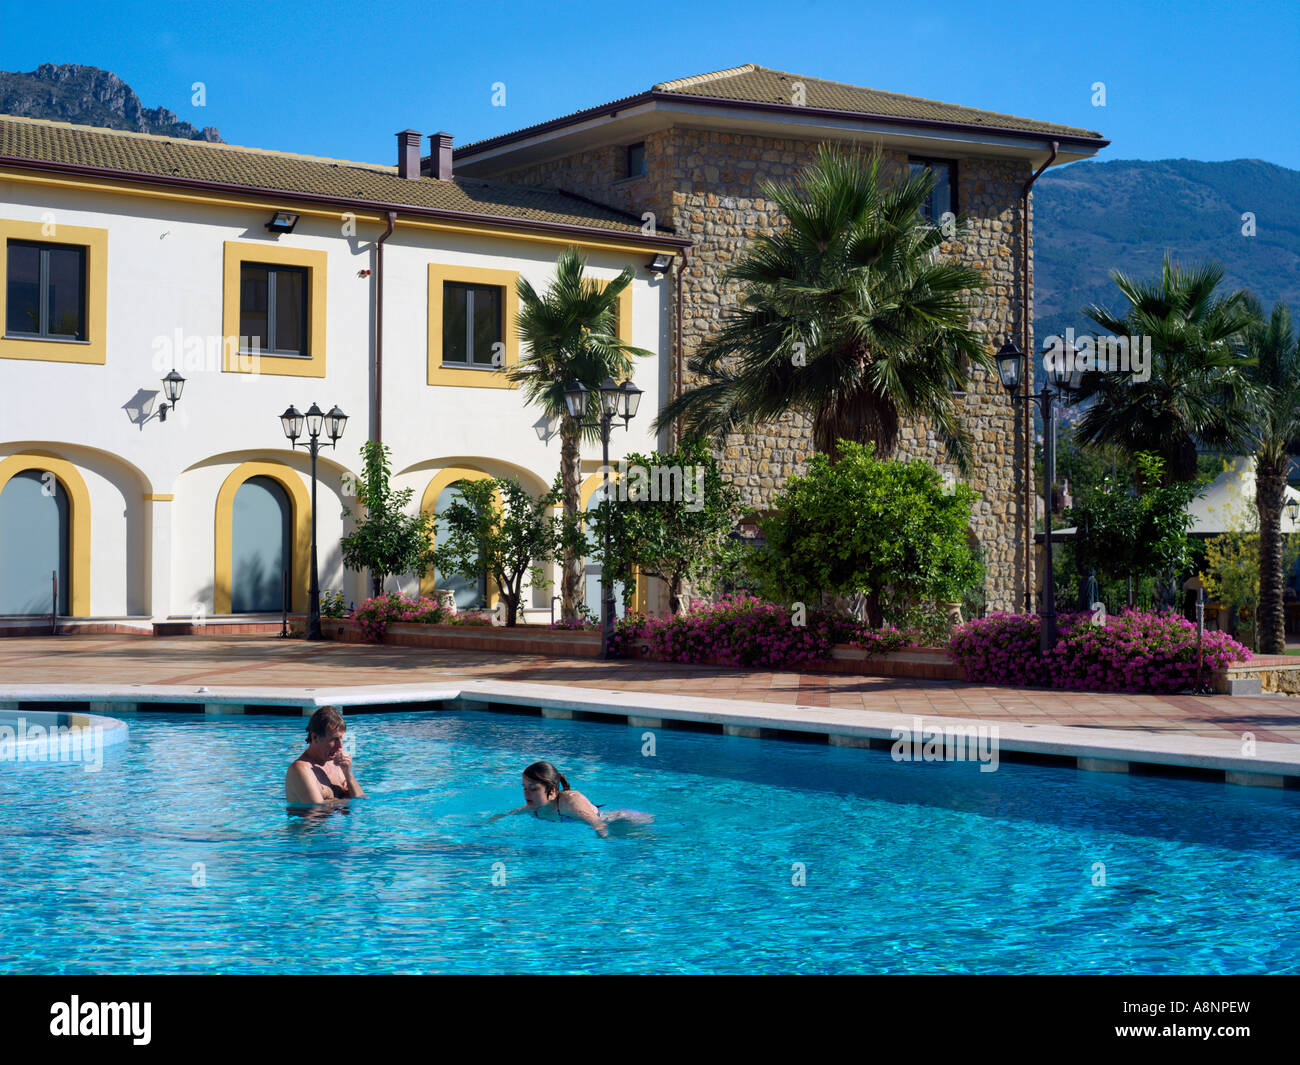 Palermo sicily italy genoardo park hotel swimming pool people stock photo royalty free image for Hotels in bologna italy with swimming pool